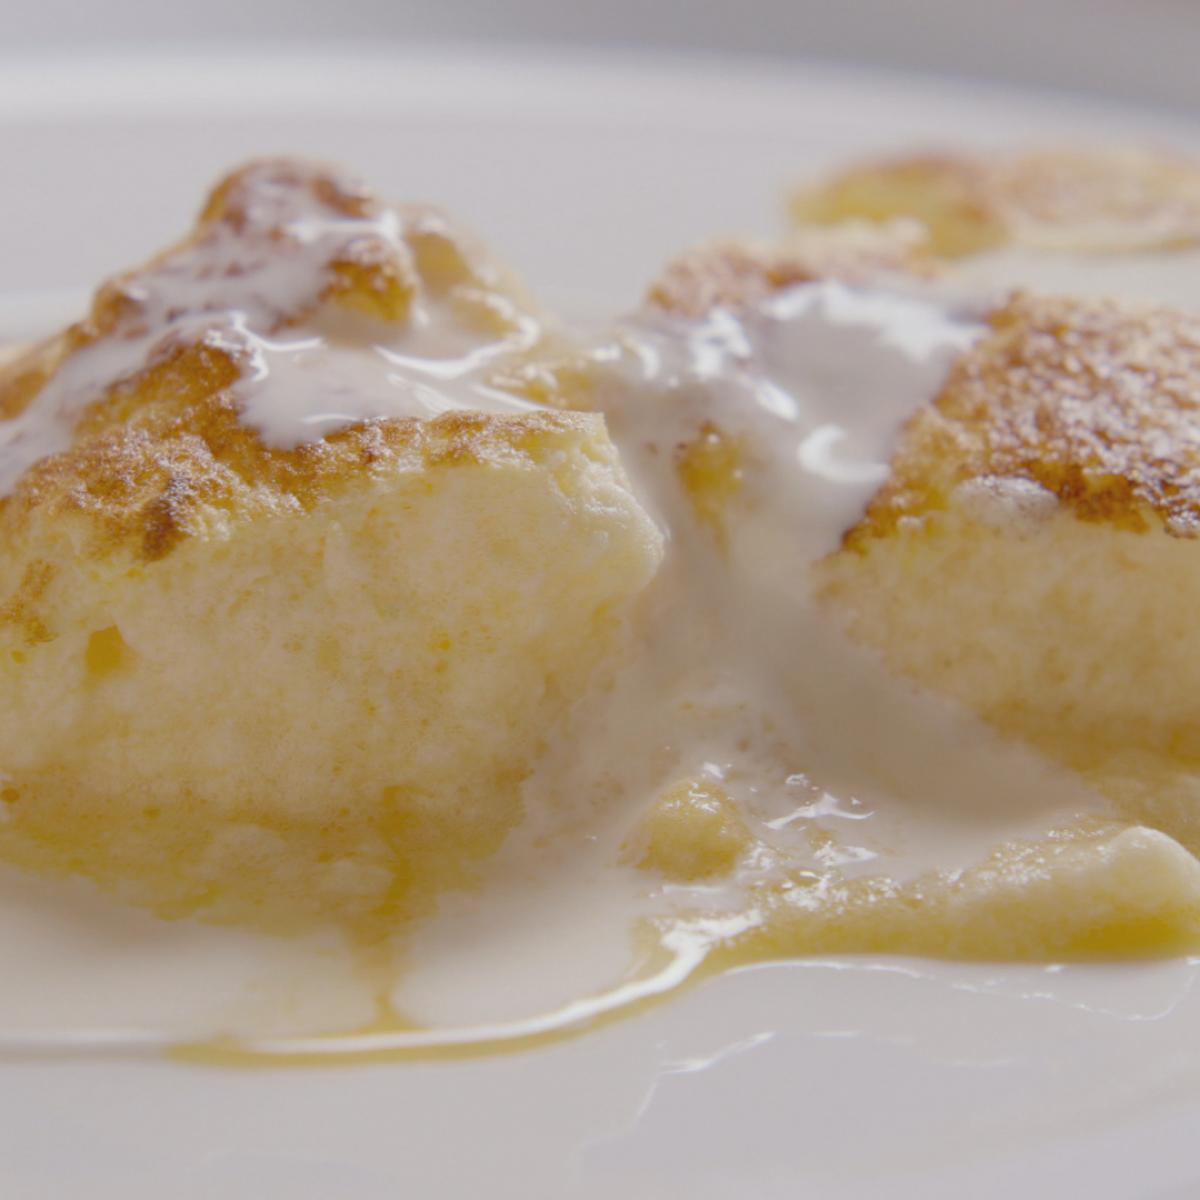 A picture of Delia's Lemon Curd Souffle Omelette recipe